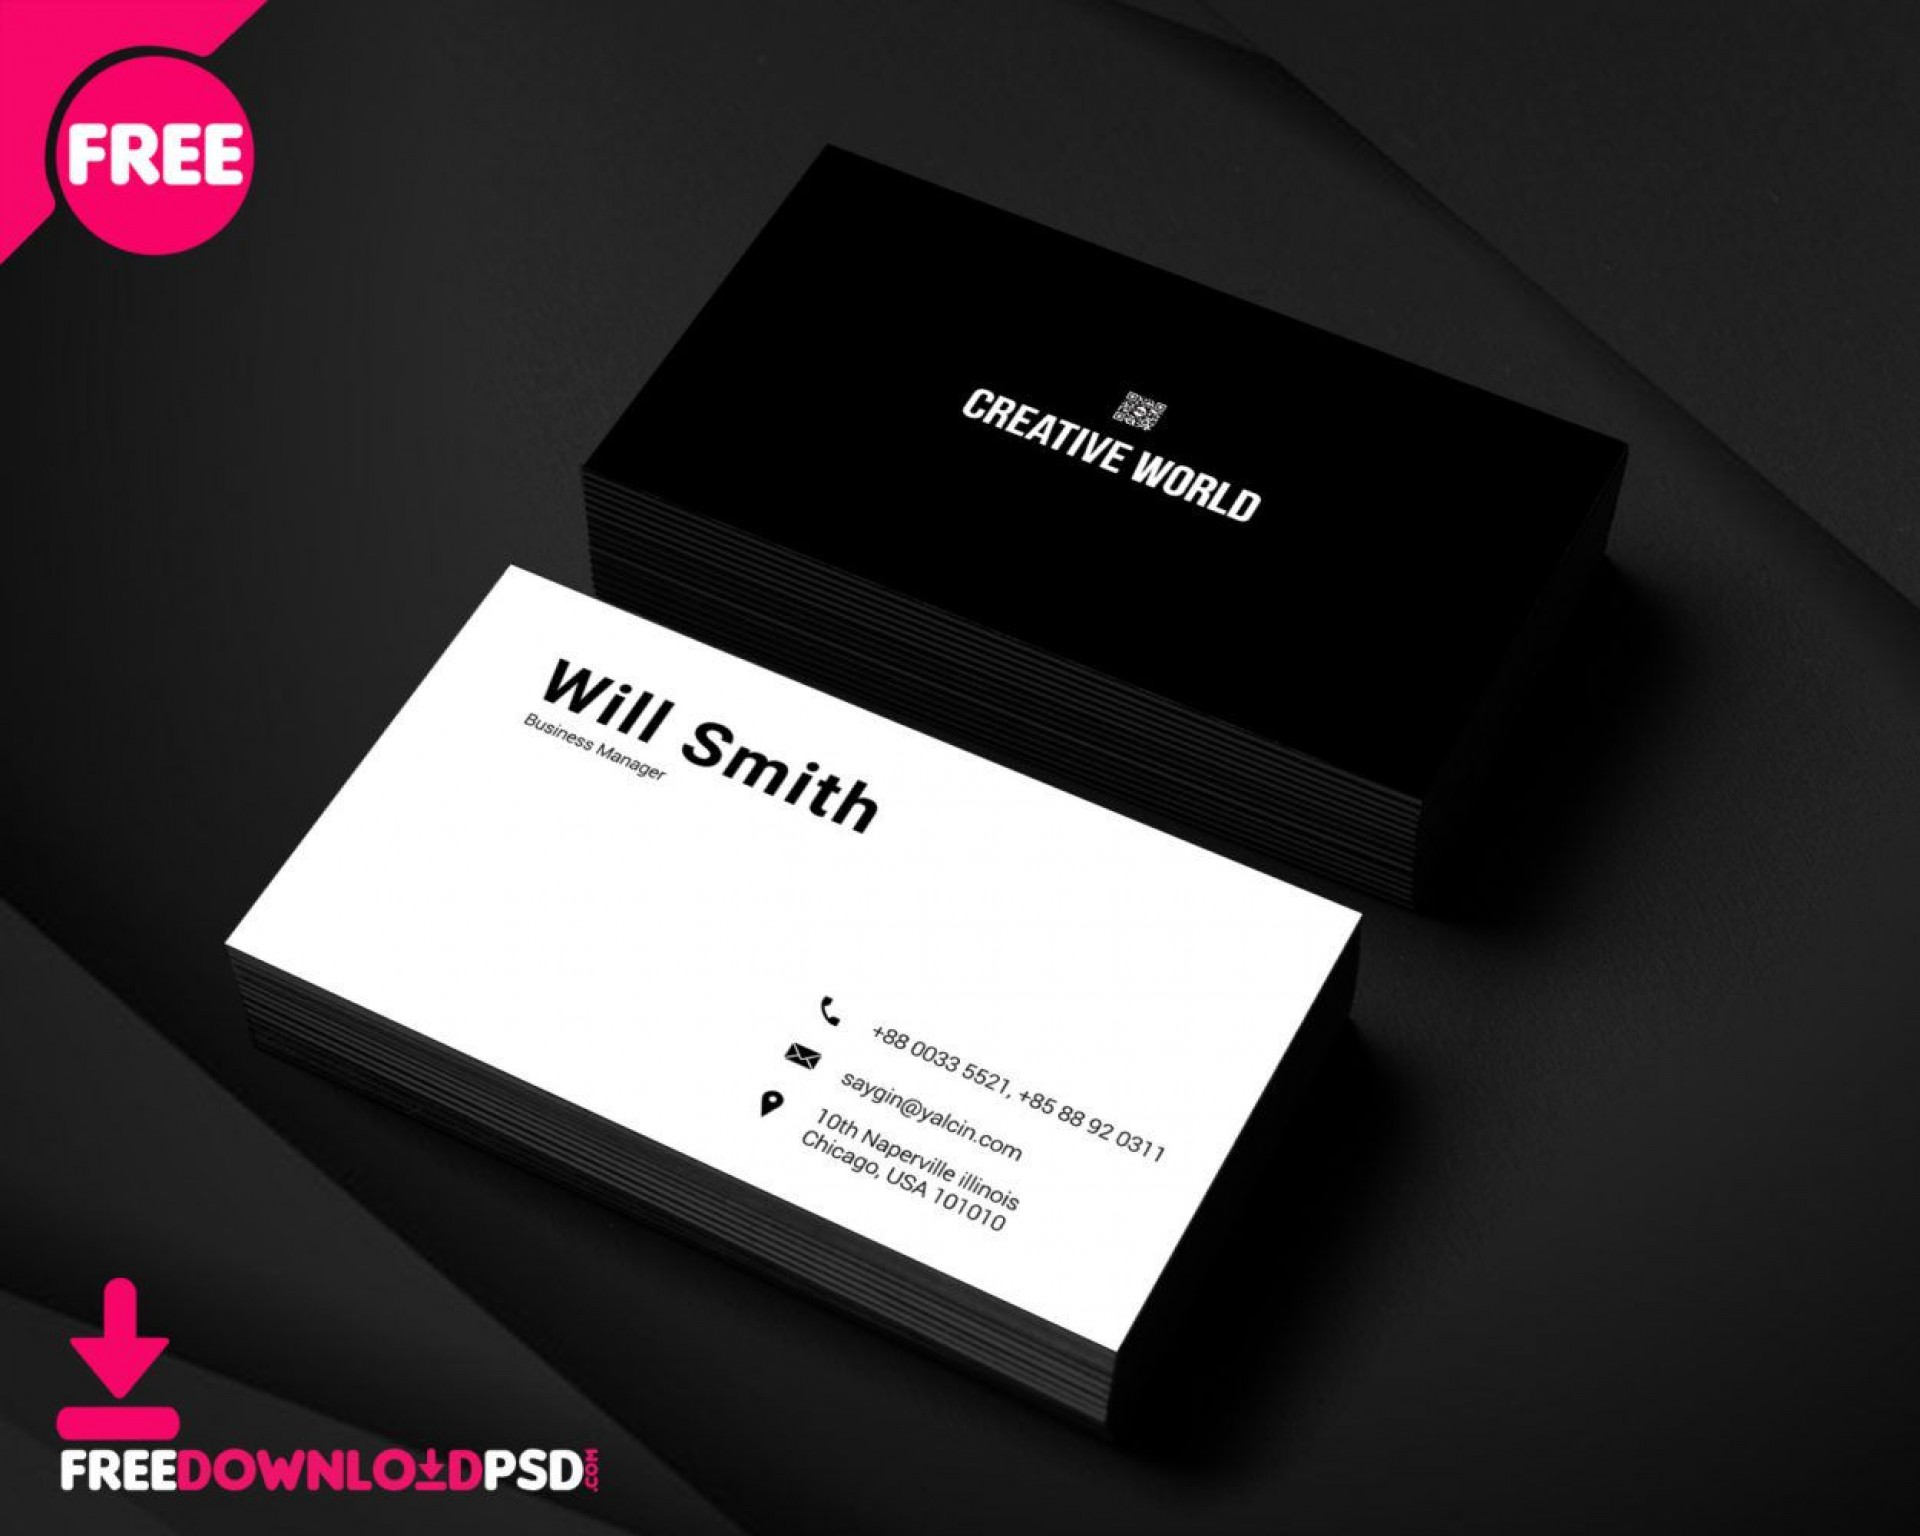 008 Surprising Minimal Busines Card Template Psd Inspiration  Simple Visiting Design In Photoshop File Free Download1920